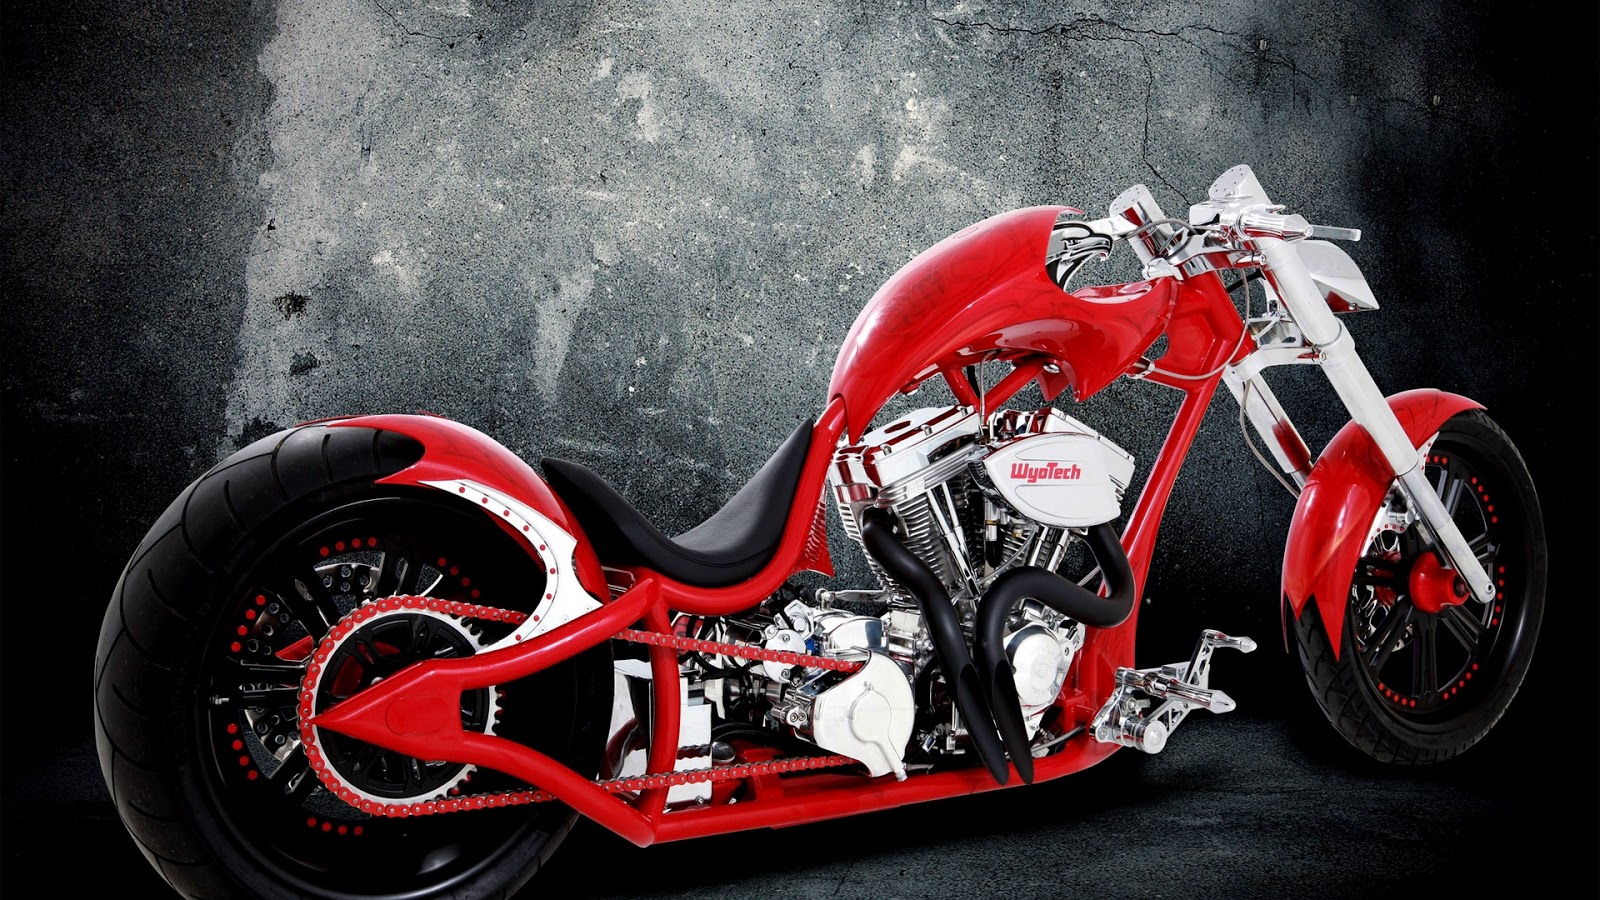 100+bikes hd 1080p wallpapers - backgroundspic